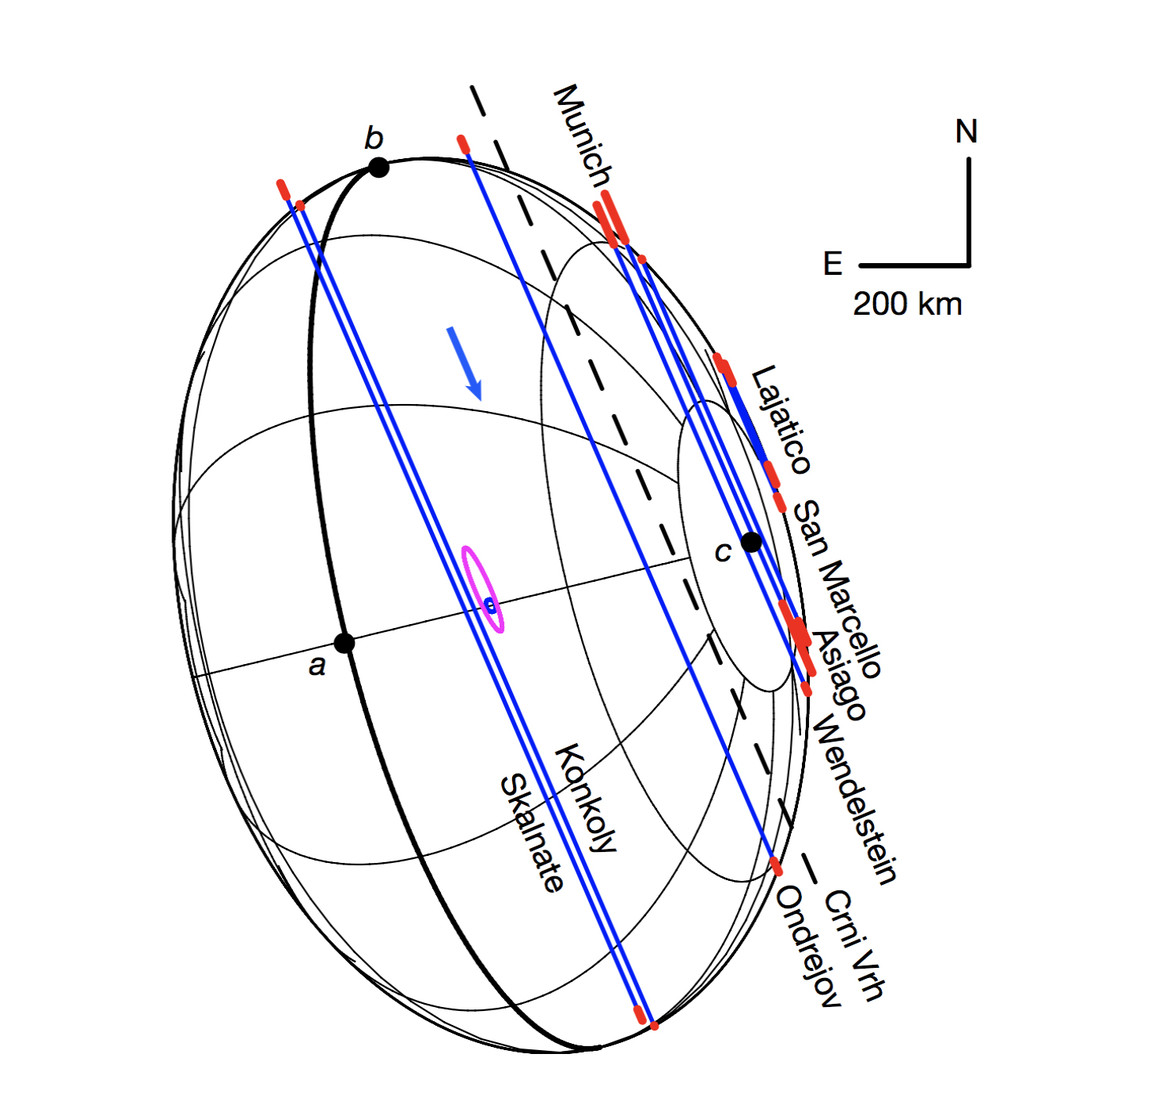 Schematic showing the shape of Haumea based on the observations; the paths of the star seen by different observatories are shown in blue. Credit: Ortiz et al